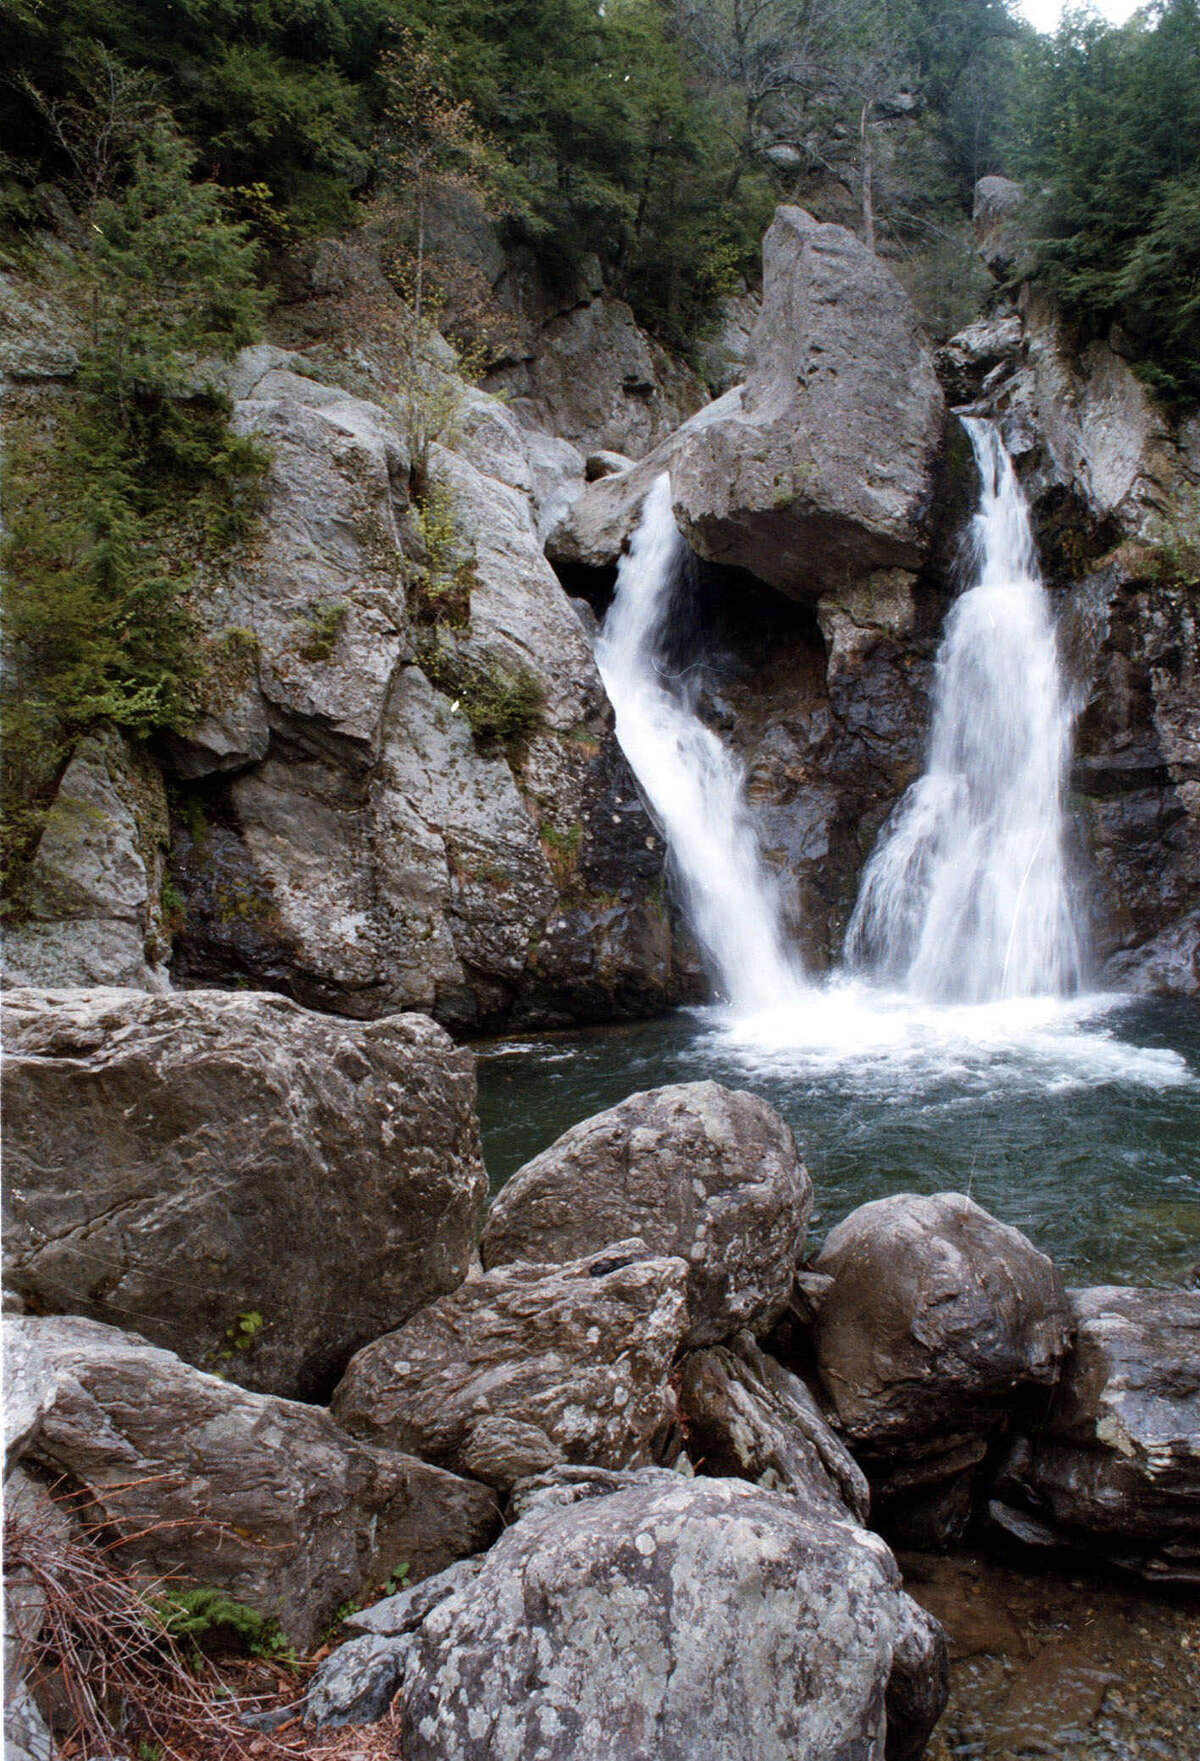 ** FILE **--Bash Bish Falls is shown in Mount Washington, Mass., in this May 10, 1999, file photo. Bash Bish, on the border with New York state, is a hidden getaway in the Berkshire Mountains. The scenic waterfall, which plunges 60 feet over moss and fern-decked rocks into a clear rock-rimmed pool, is one of the most dramatic and most photographed in the state. The town of Mount Washington is preparing to close the only road entering the area from the Massachusetts side because it can not afford to fixthe badly worn road. (AP Photo/The Berkshire Eagle, Ben Garver)